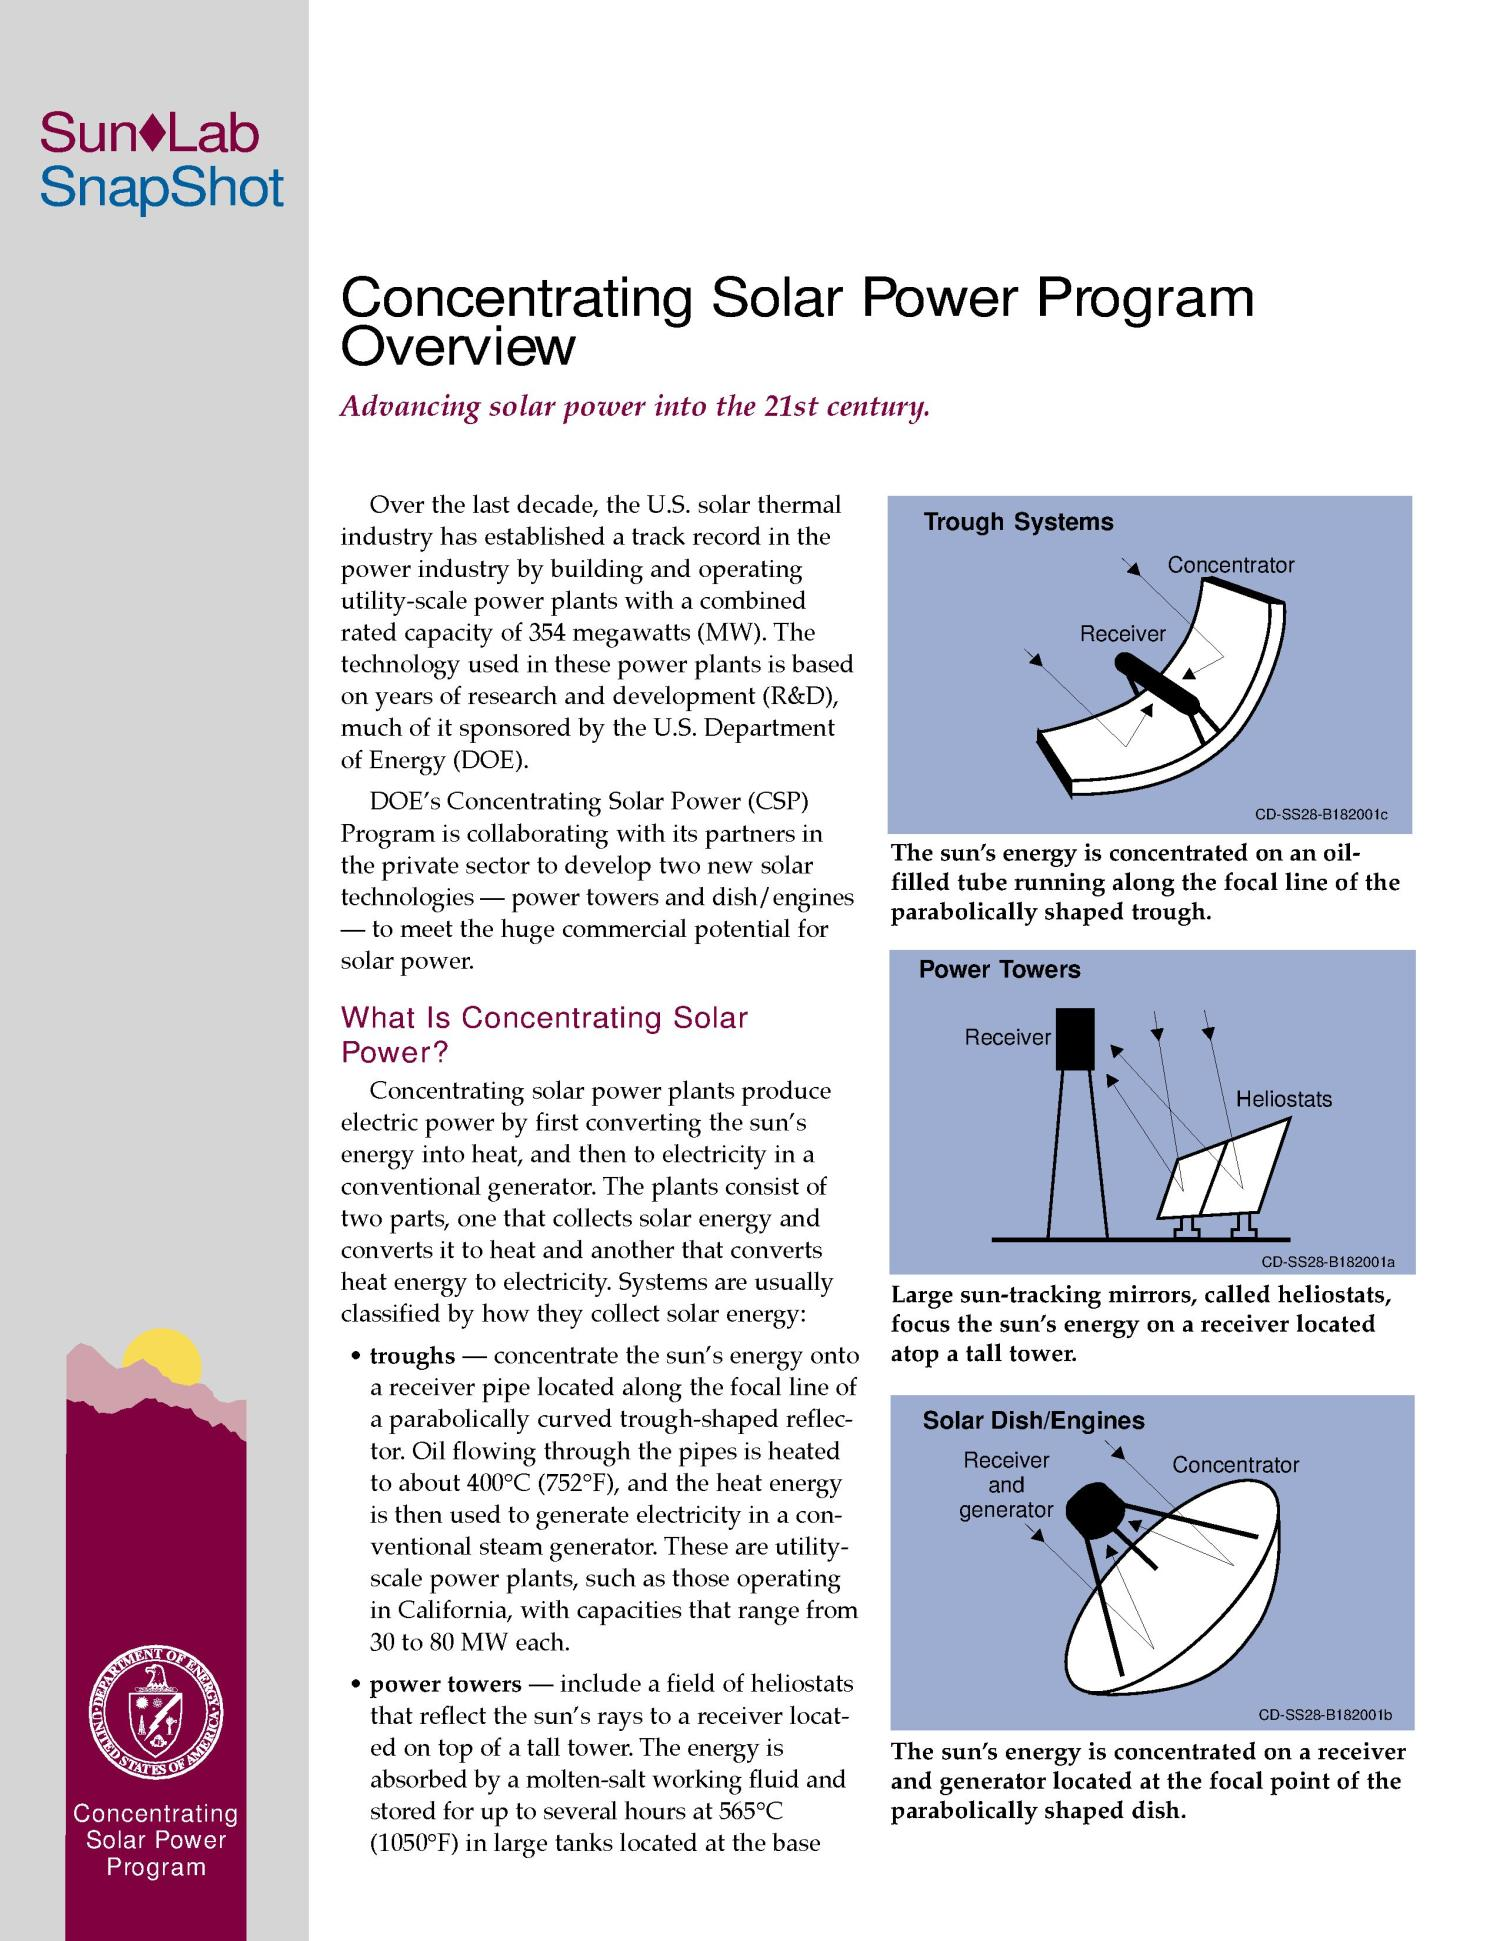 SunLab: Concentrating Solar Power Program Overview                                                                                                      [Sequence #]: 1 of 4